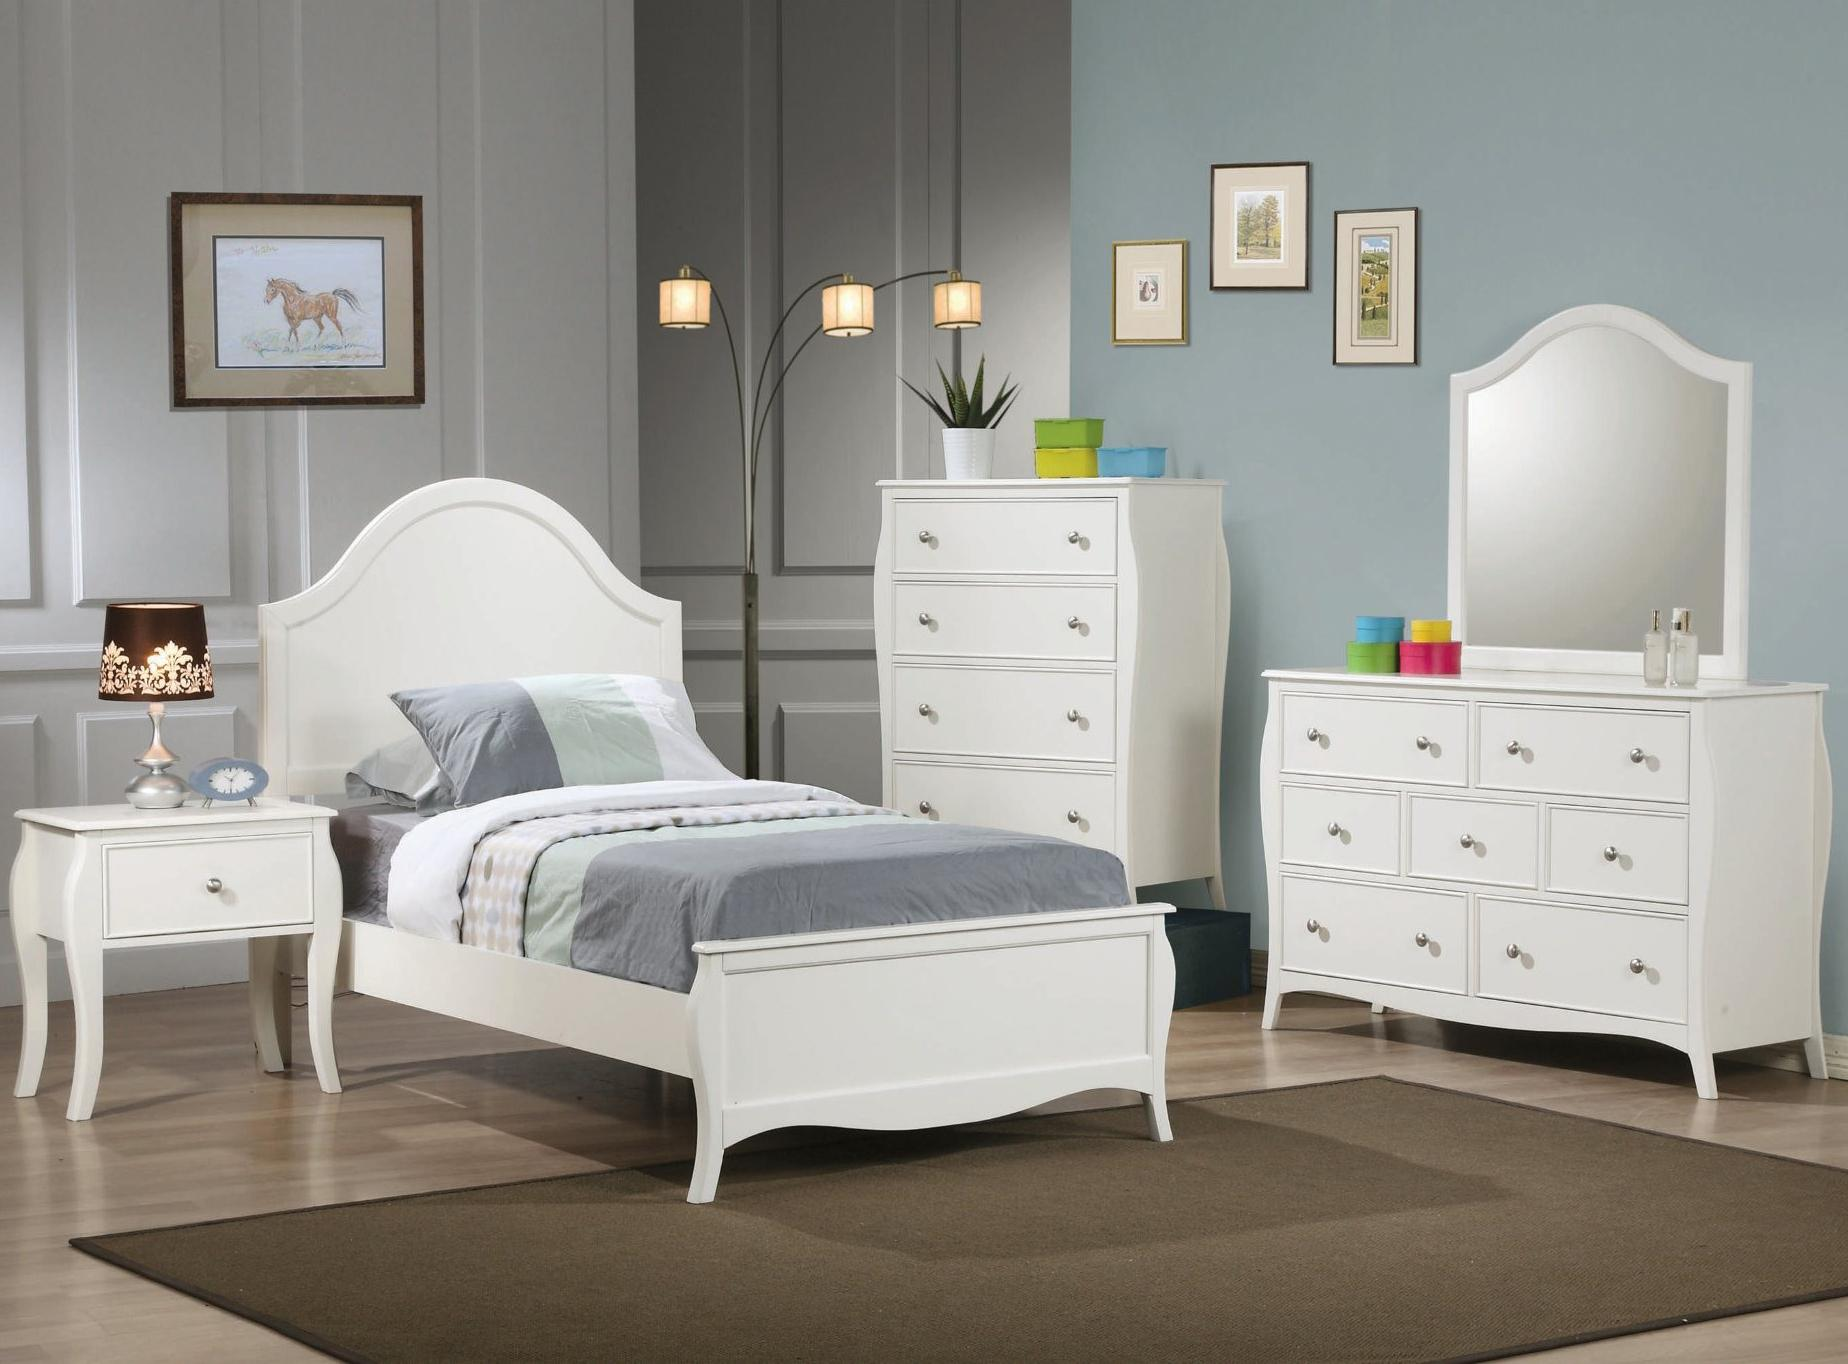 Coaster Furniture Dominique Bedroom Set Broadway Furniture